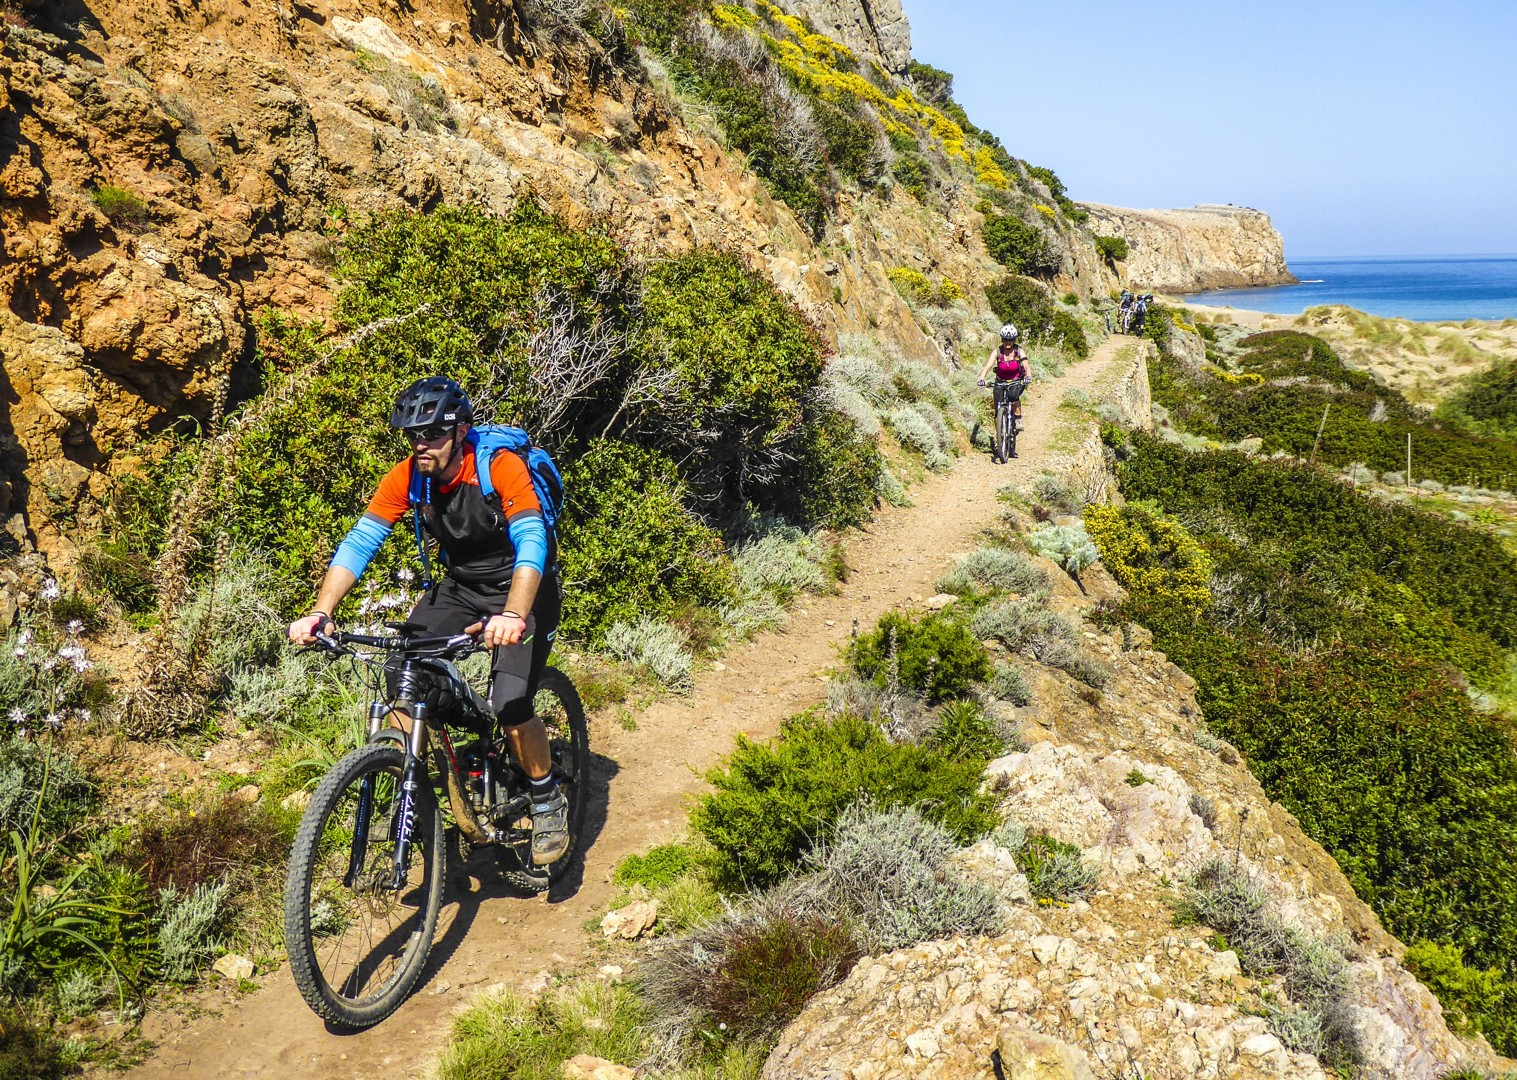 dirt-track-singletrack-mountain-biking-sardinia-italy.jpg - Sardinia - Coast to Coast - Mountain Biking